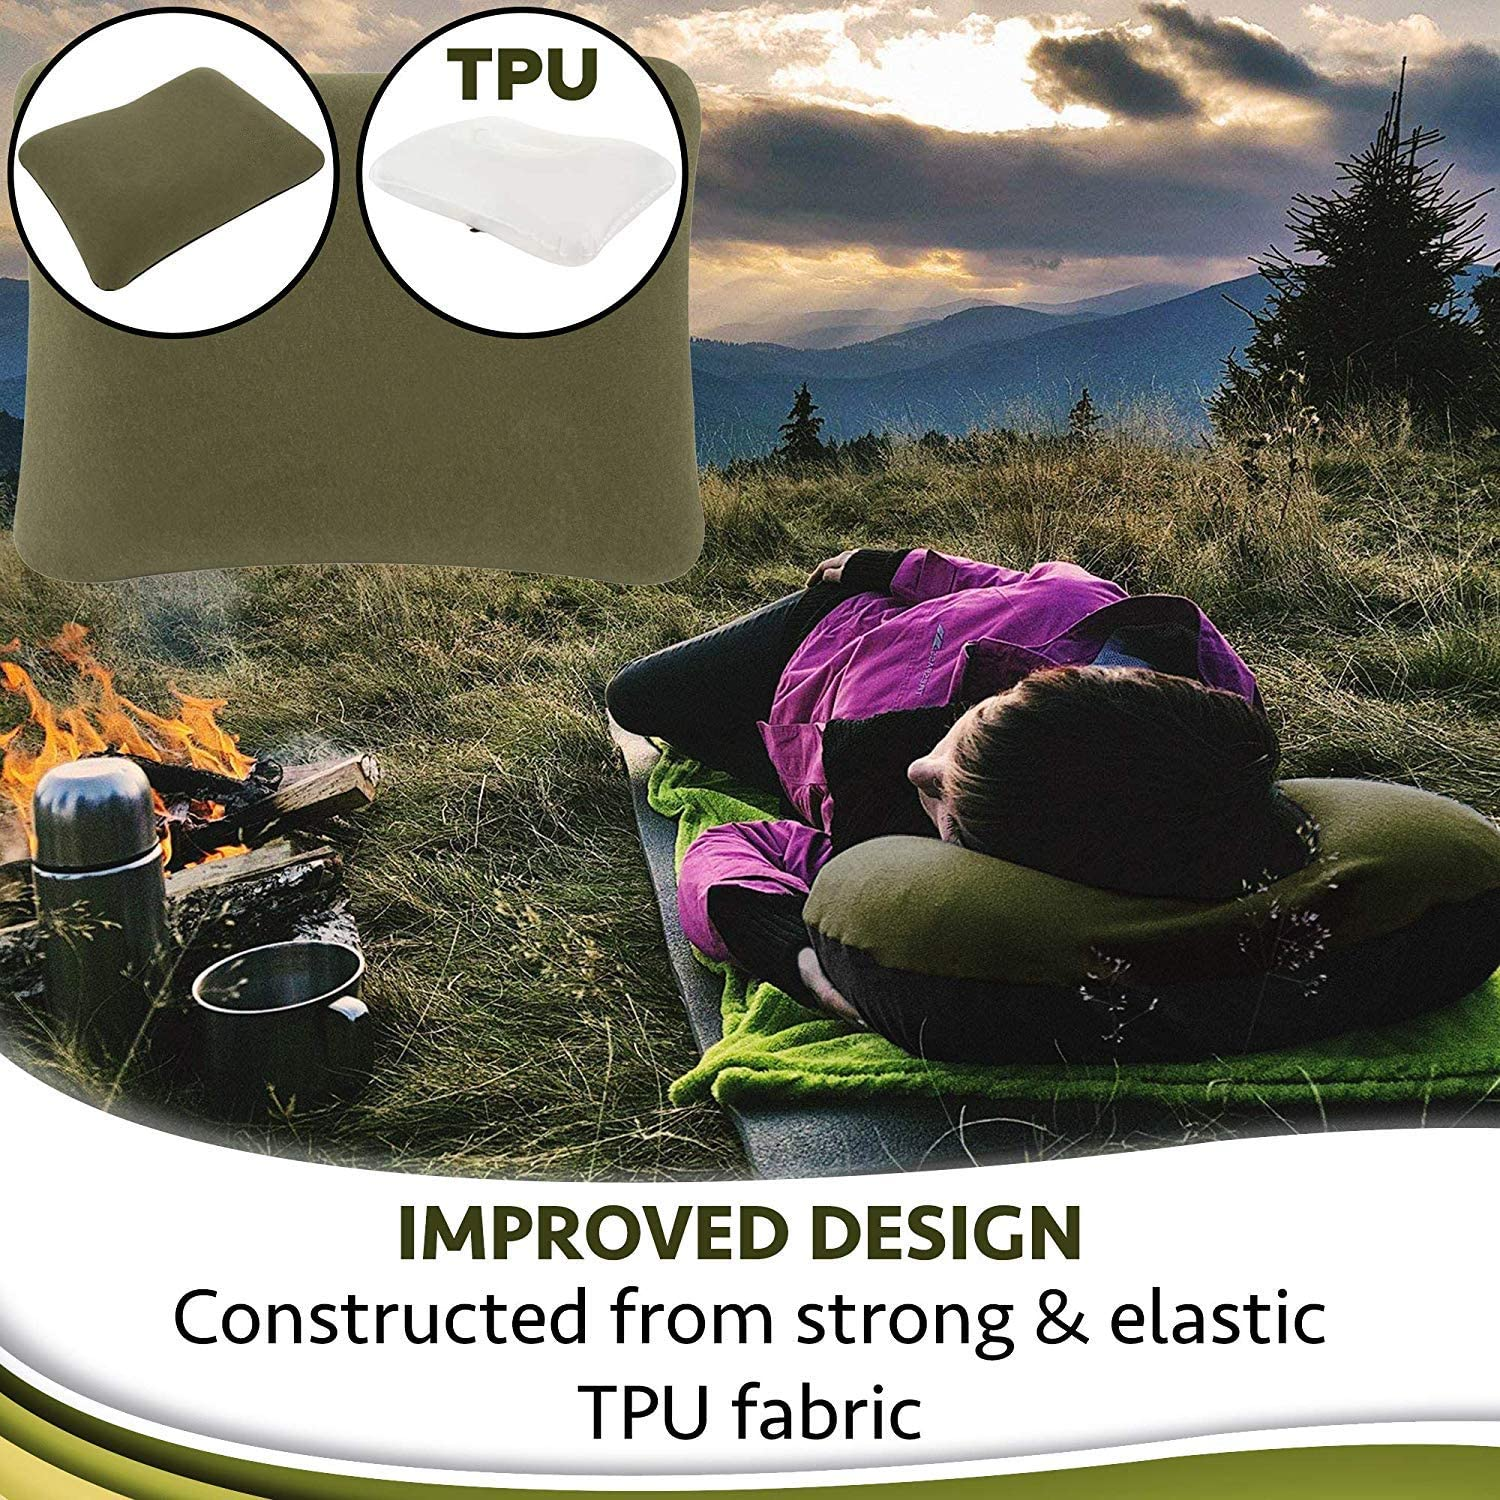 Inflatable Camping Travel Pillow Ultralight Lightweight Inflating Blow Up Pillow Portable Air Pillow for Backpack Camp Exped Travelling Hiking Survival Sleeping Best Compact Backpacking Pillow